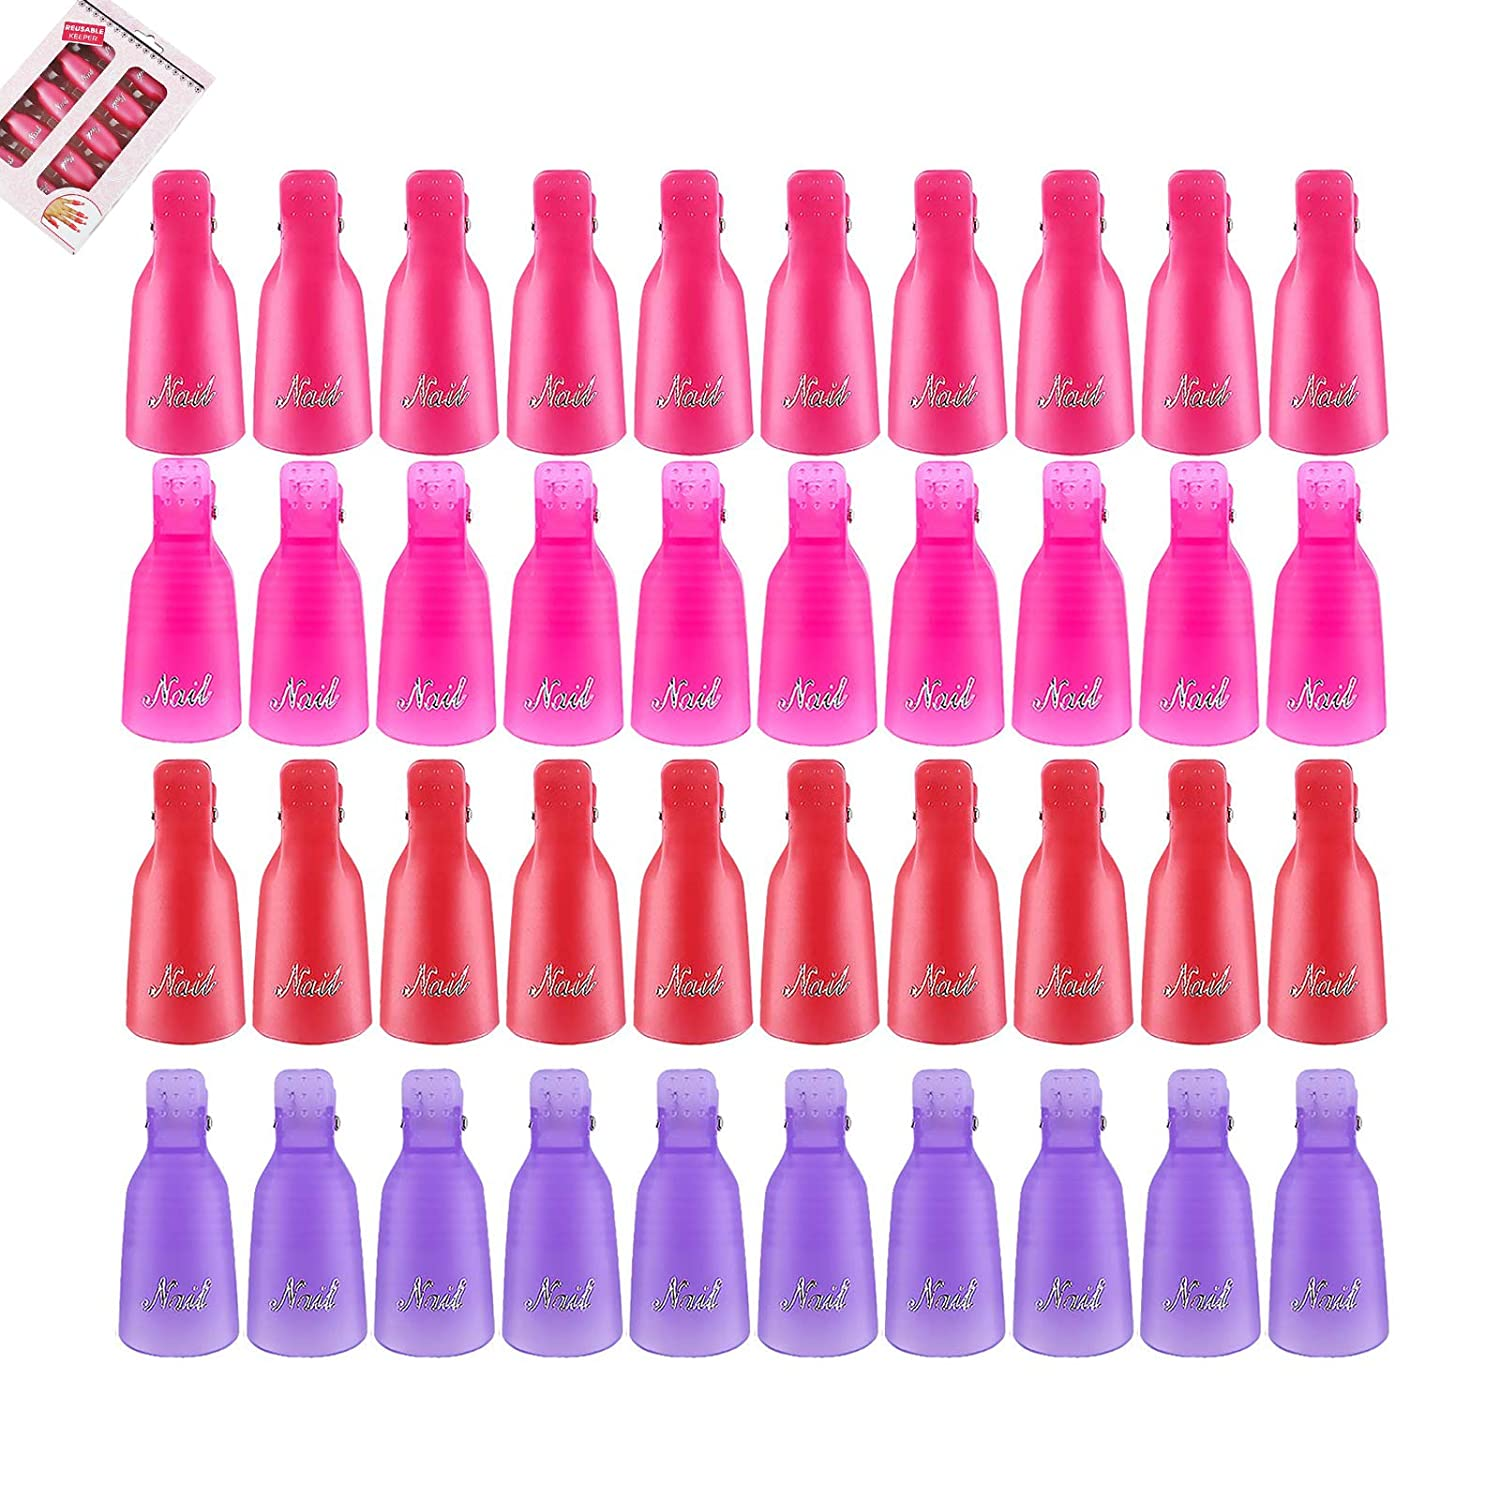 Permotary 40 Pcs Plastic Max Ranking integrated 1st place 85% OFF Nail Remover Soak Clips Art Of Cap